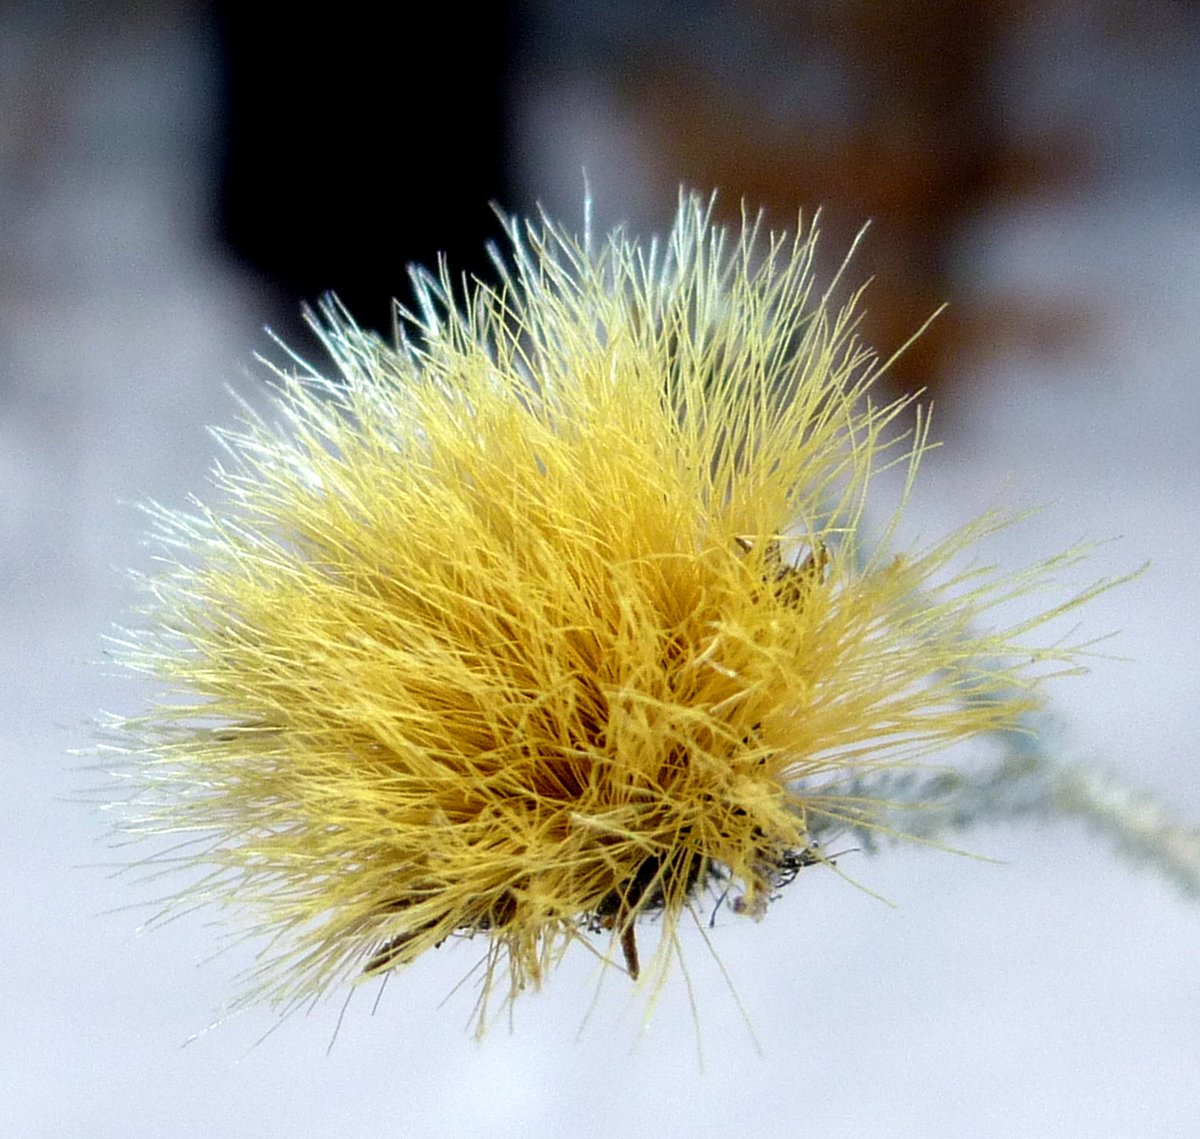 5. Aster Seed Head